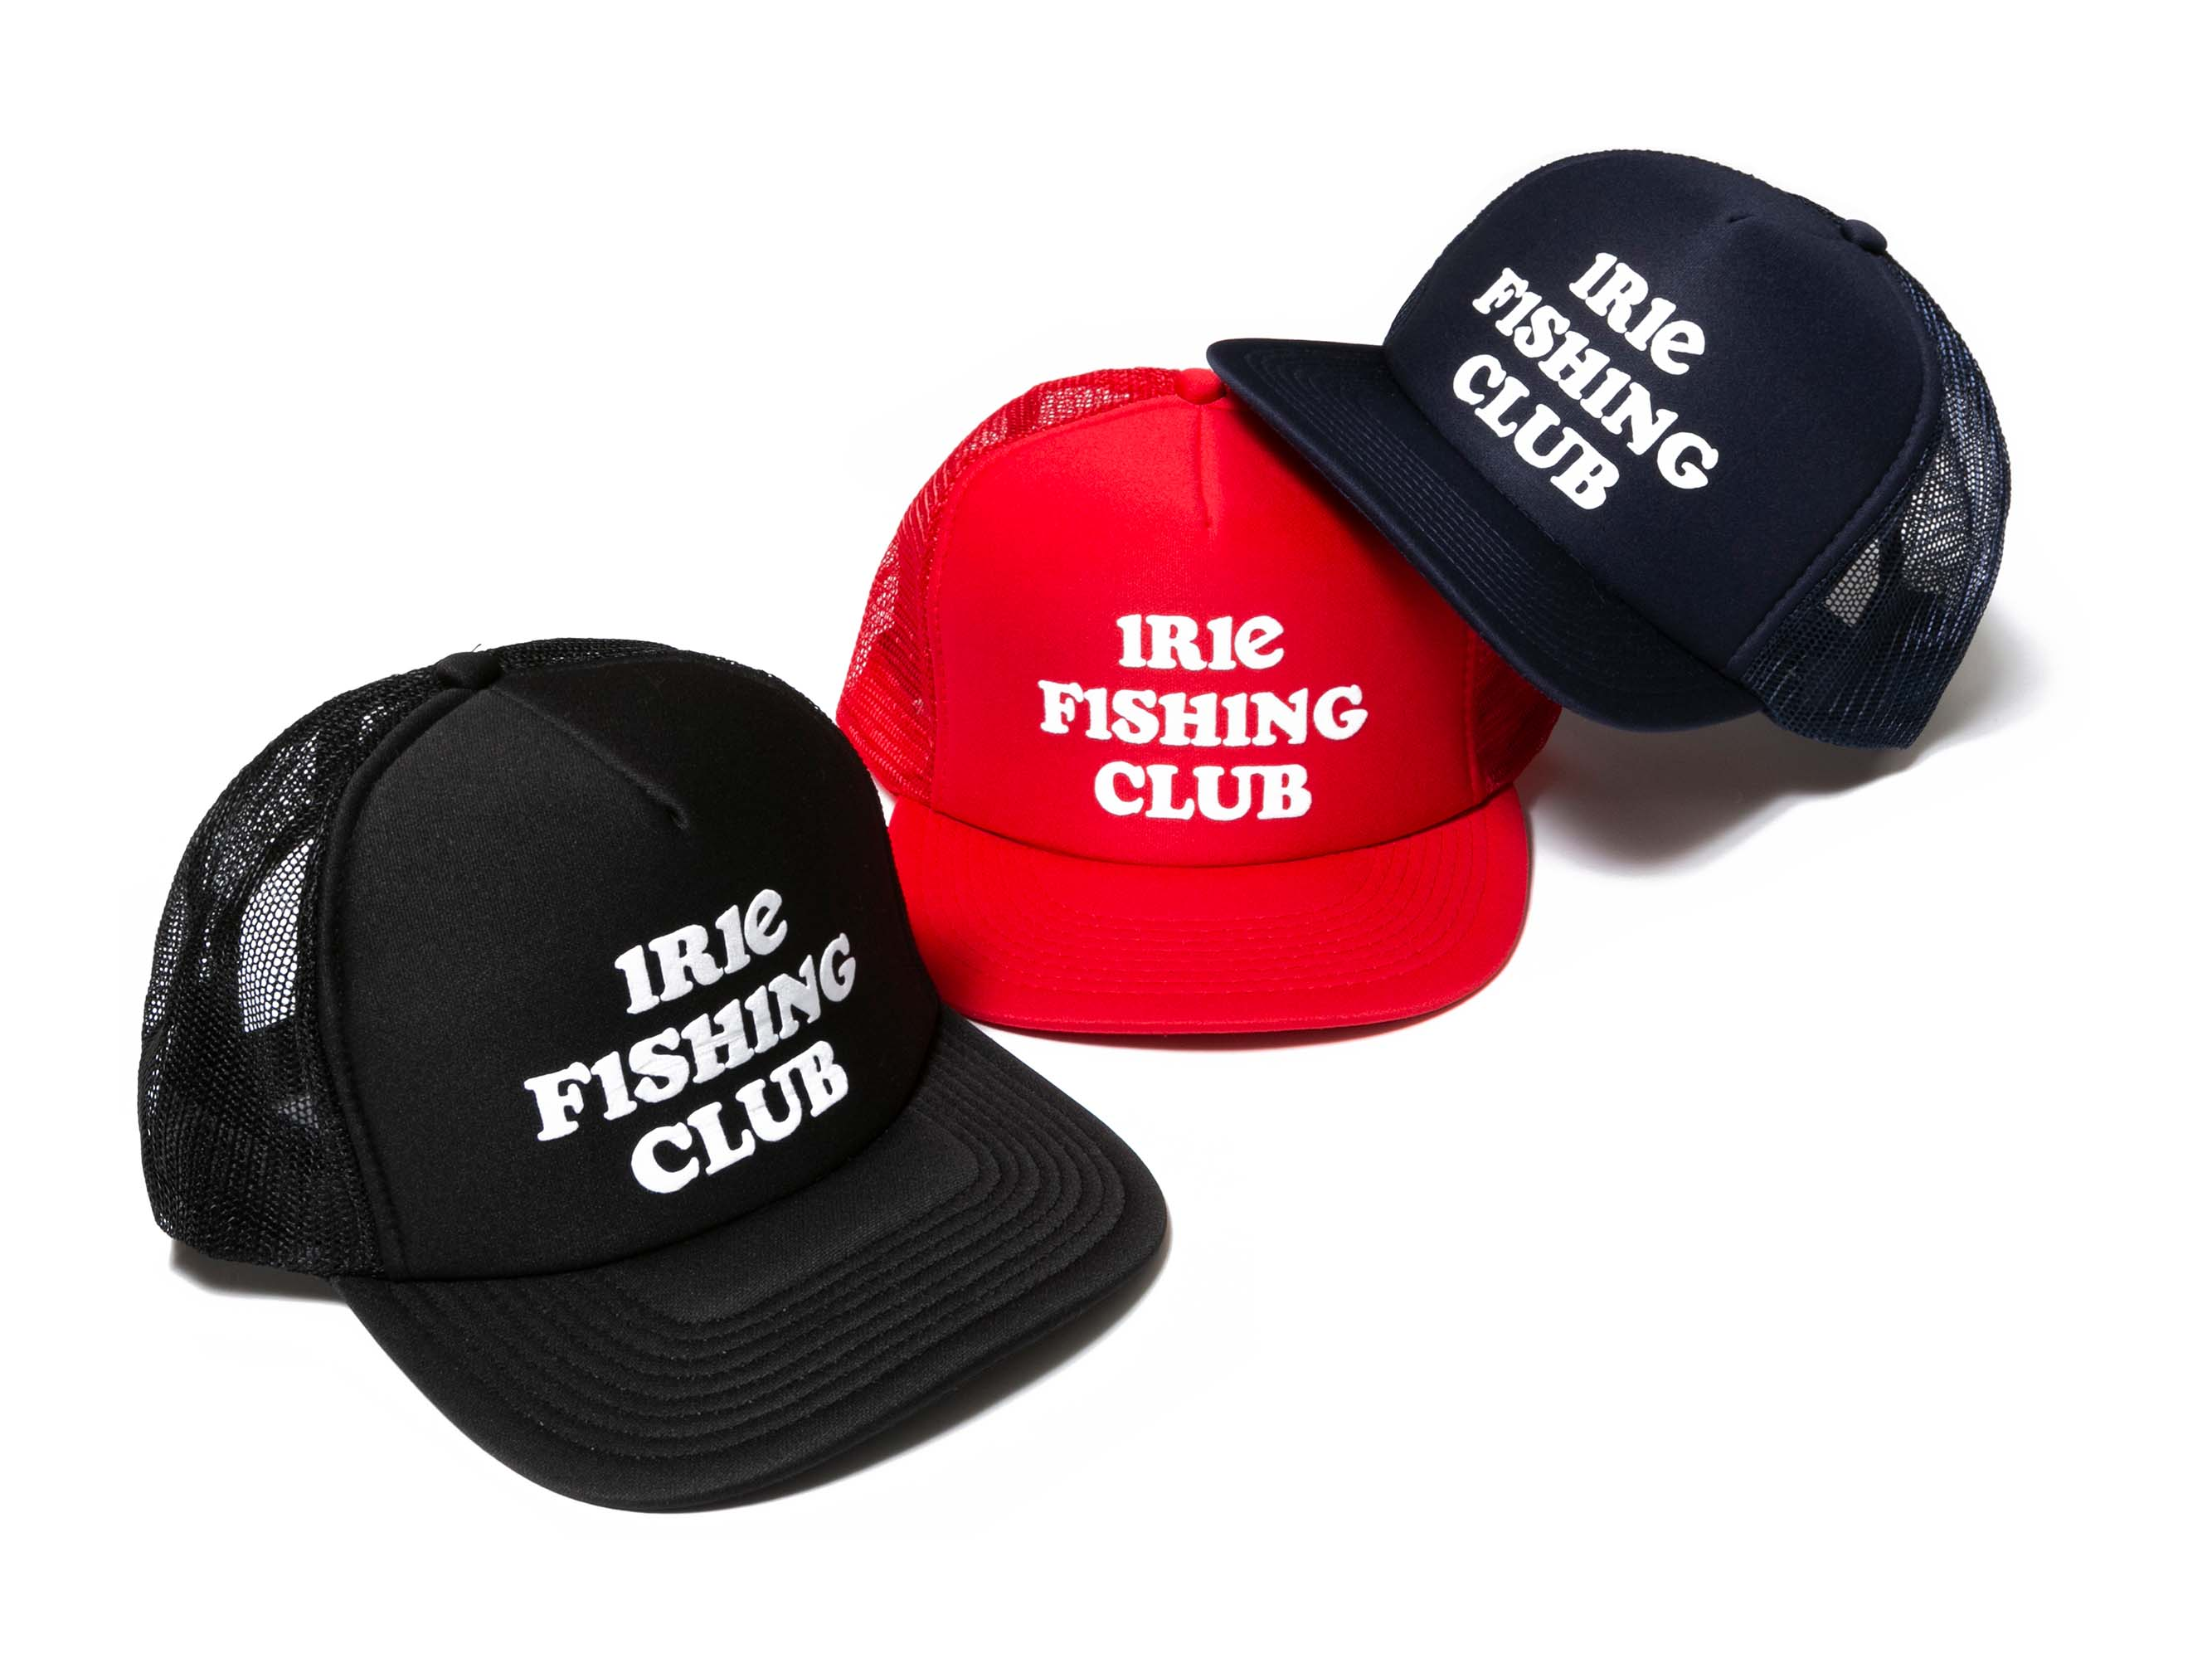 IRIE FISHING CLUB MESH CAP - IRIE FISHING CLUB